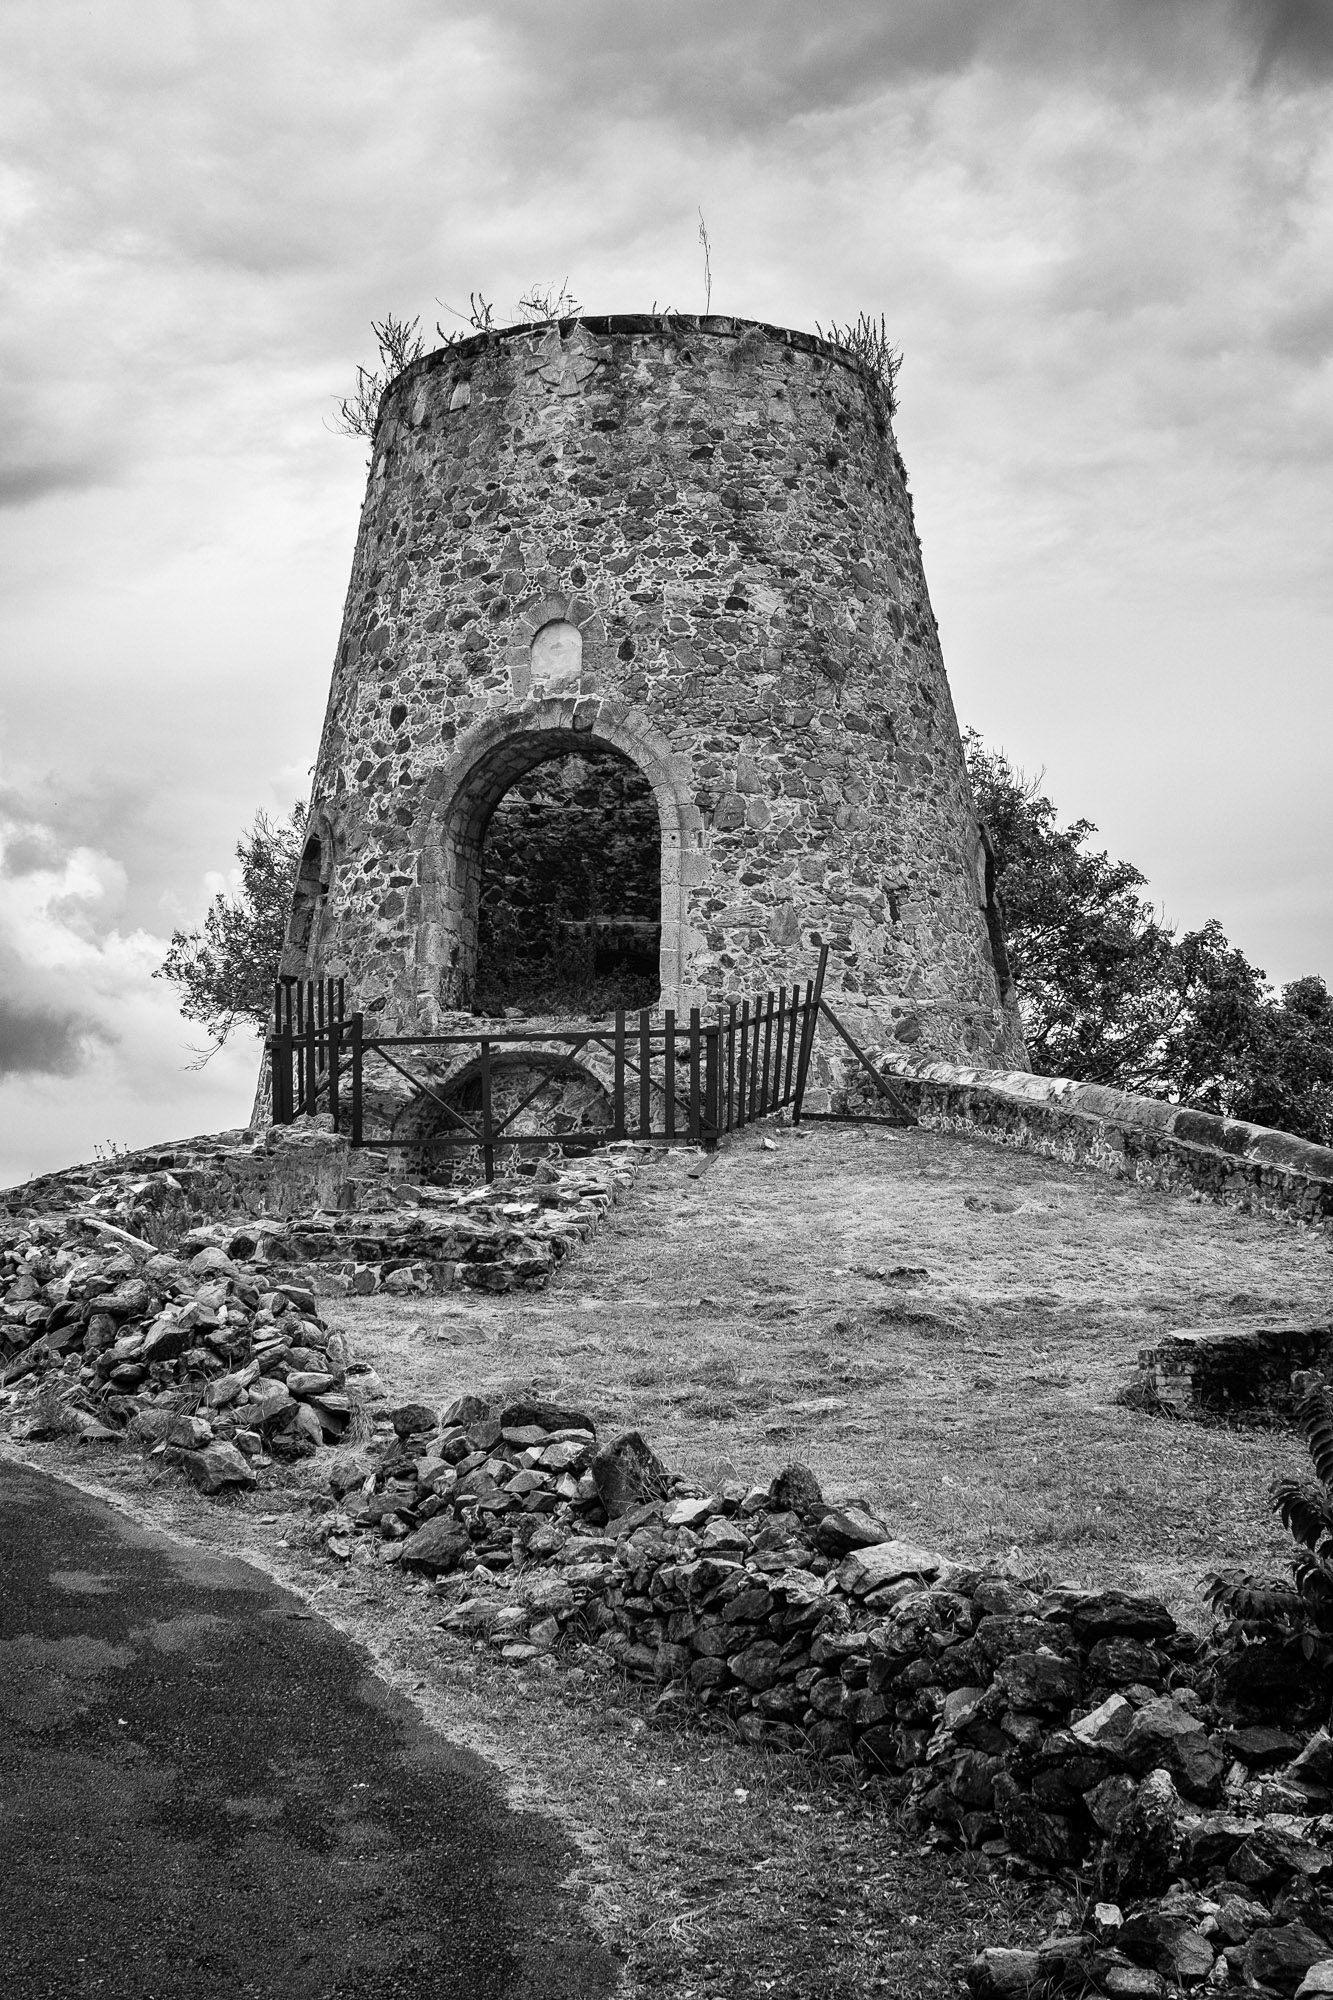 The old windmill in black and white.